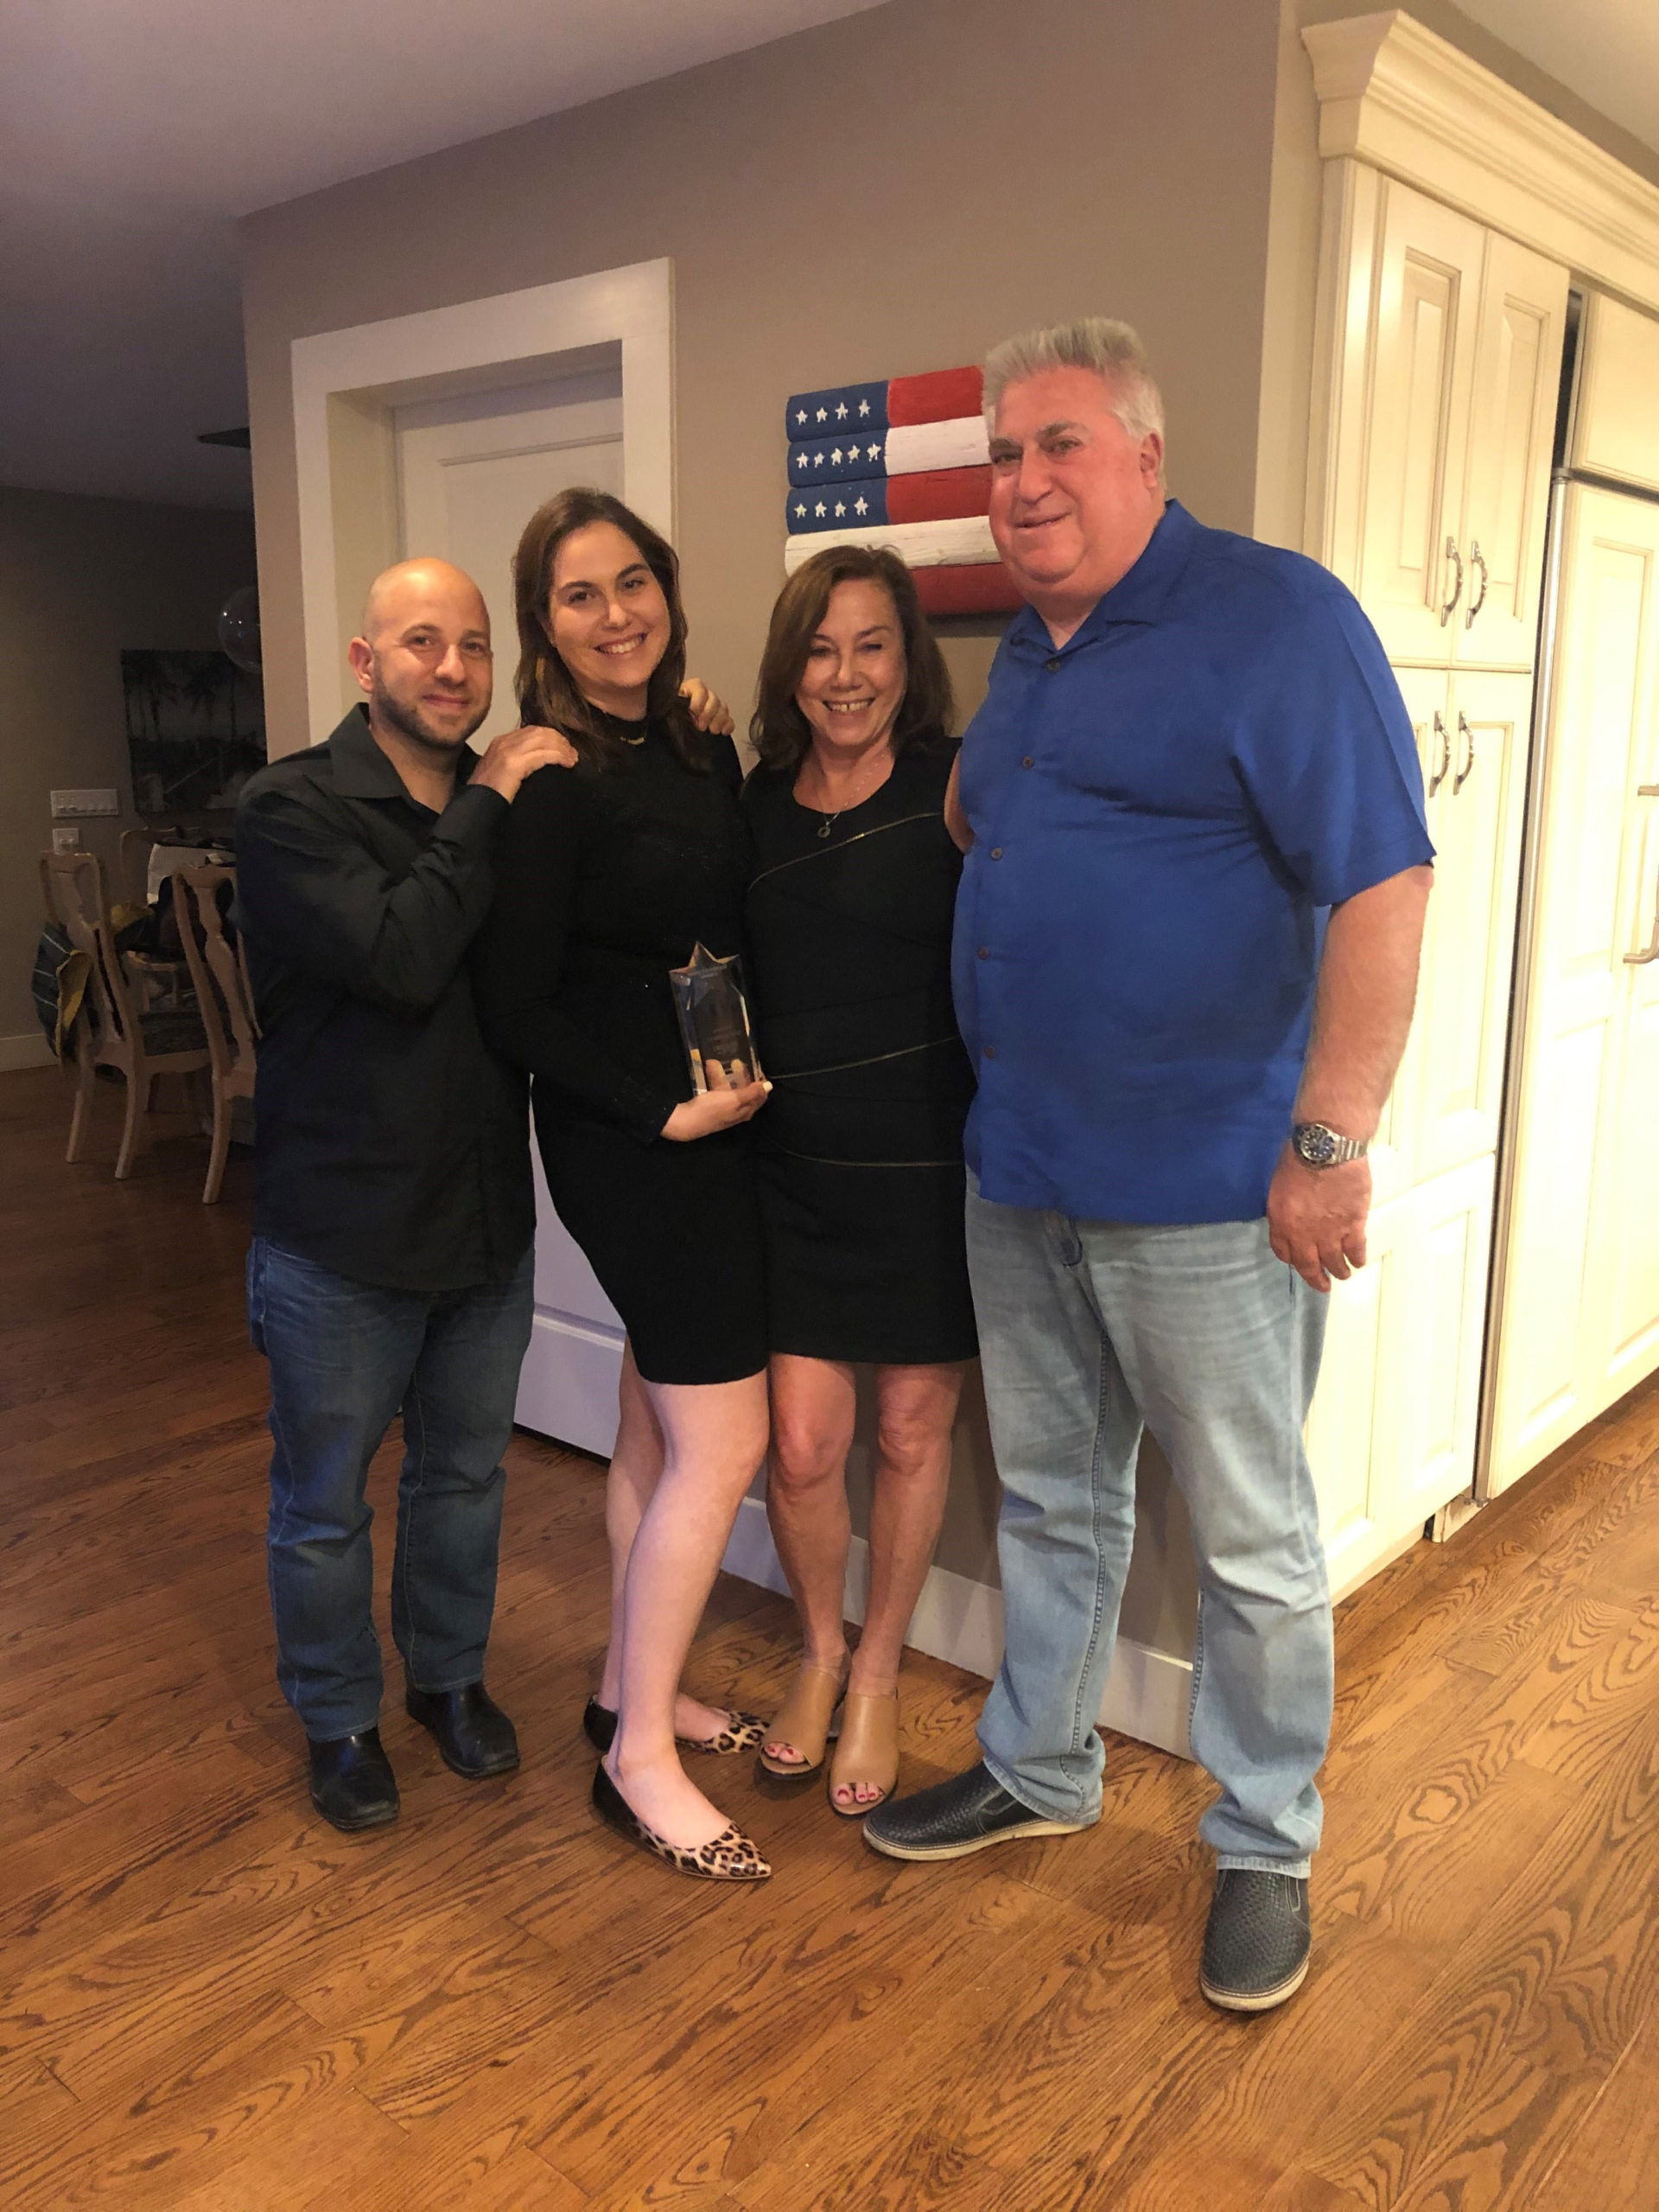 Amanda Goldberg, second from left, and her fiance, Nir Shemesh, with Ms. Goldberg's parents, Denise and Mark Goldberg, founders of the Original Goldberg's bagel empire. Amanda Goldberg, 32, was diagnosed with type 1 diabetes at the age of 9. In lieu of engagement gifts, the couple asked guests to support the Diabetes Research Institute Foundation.